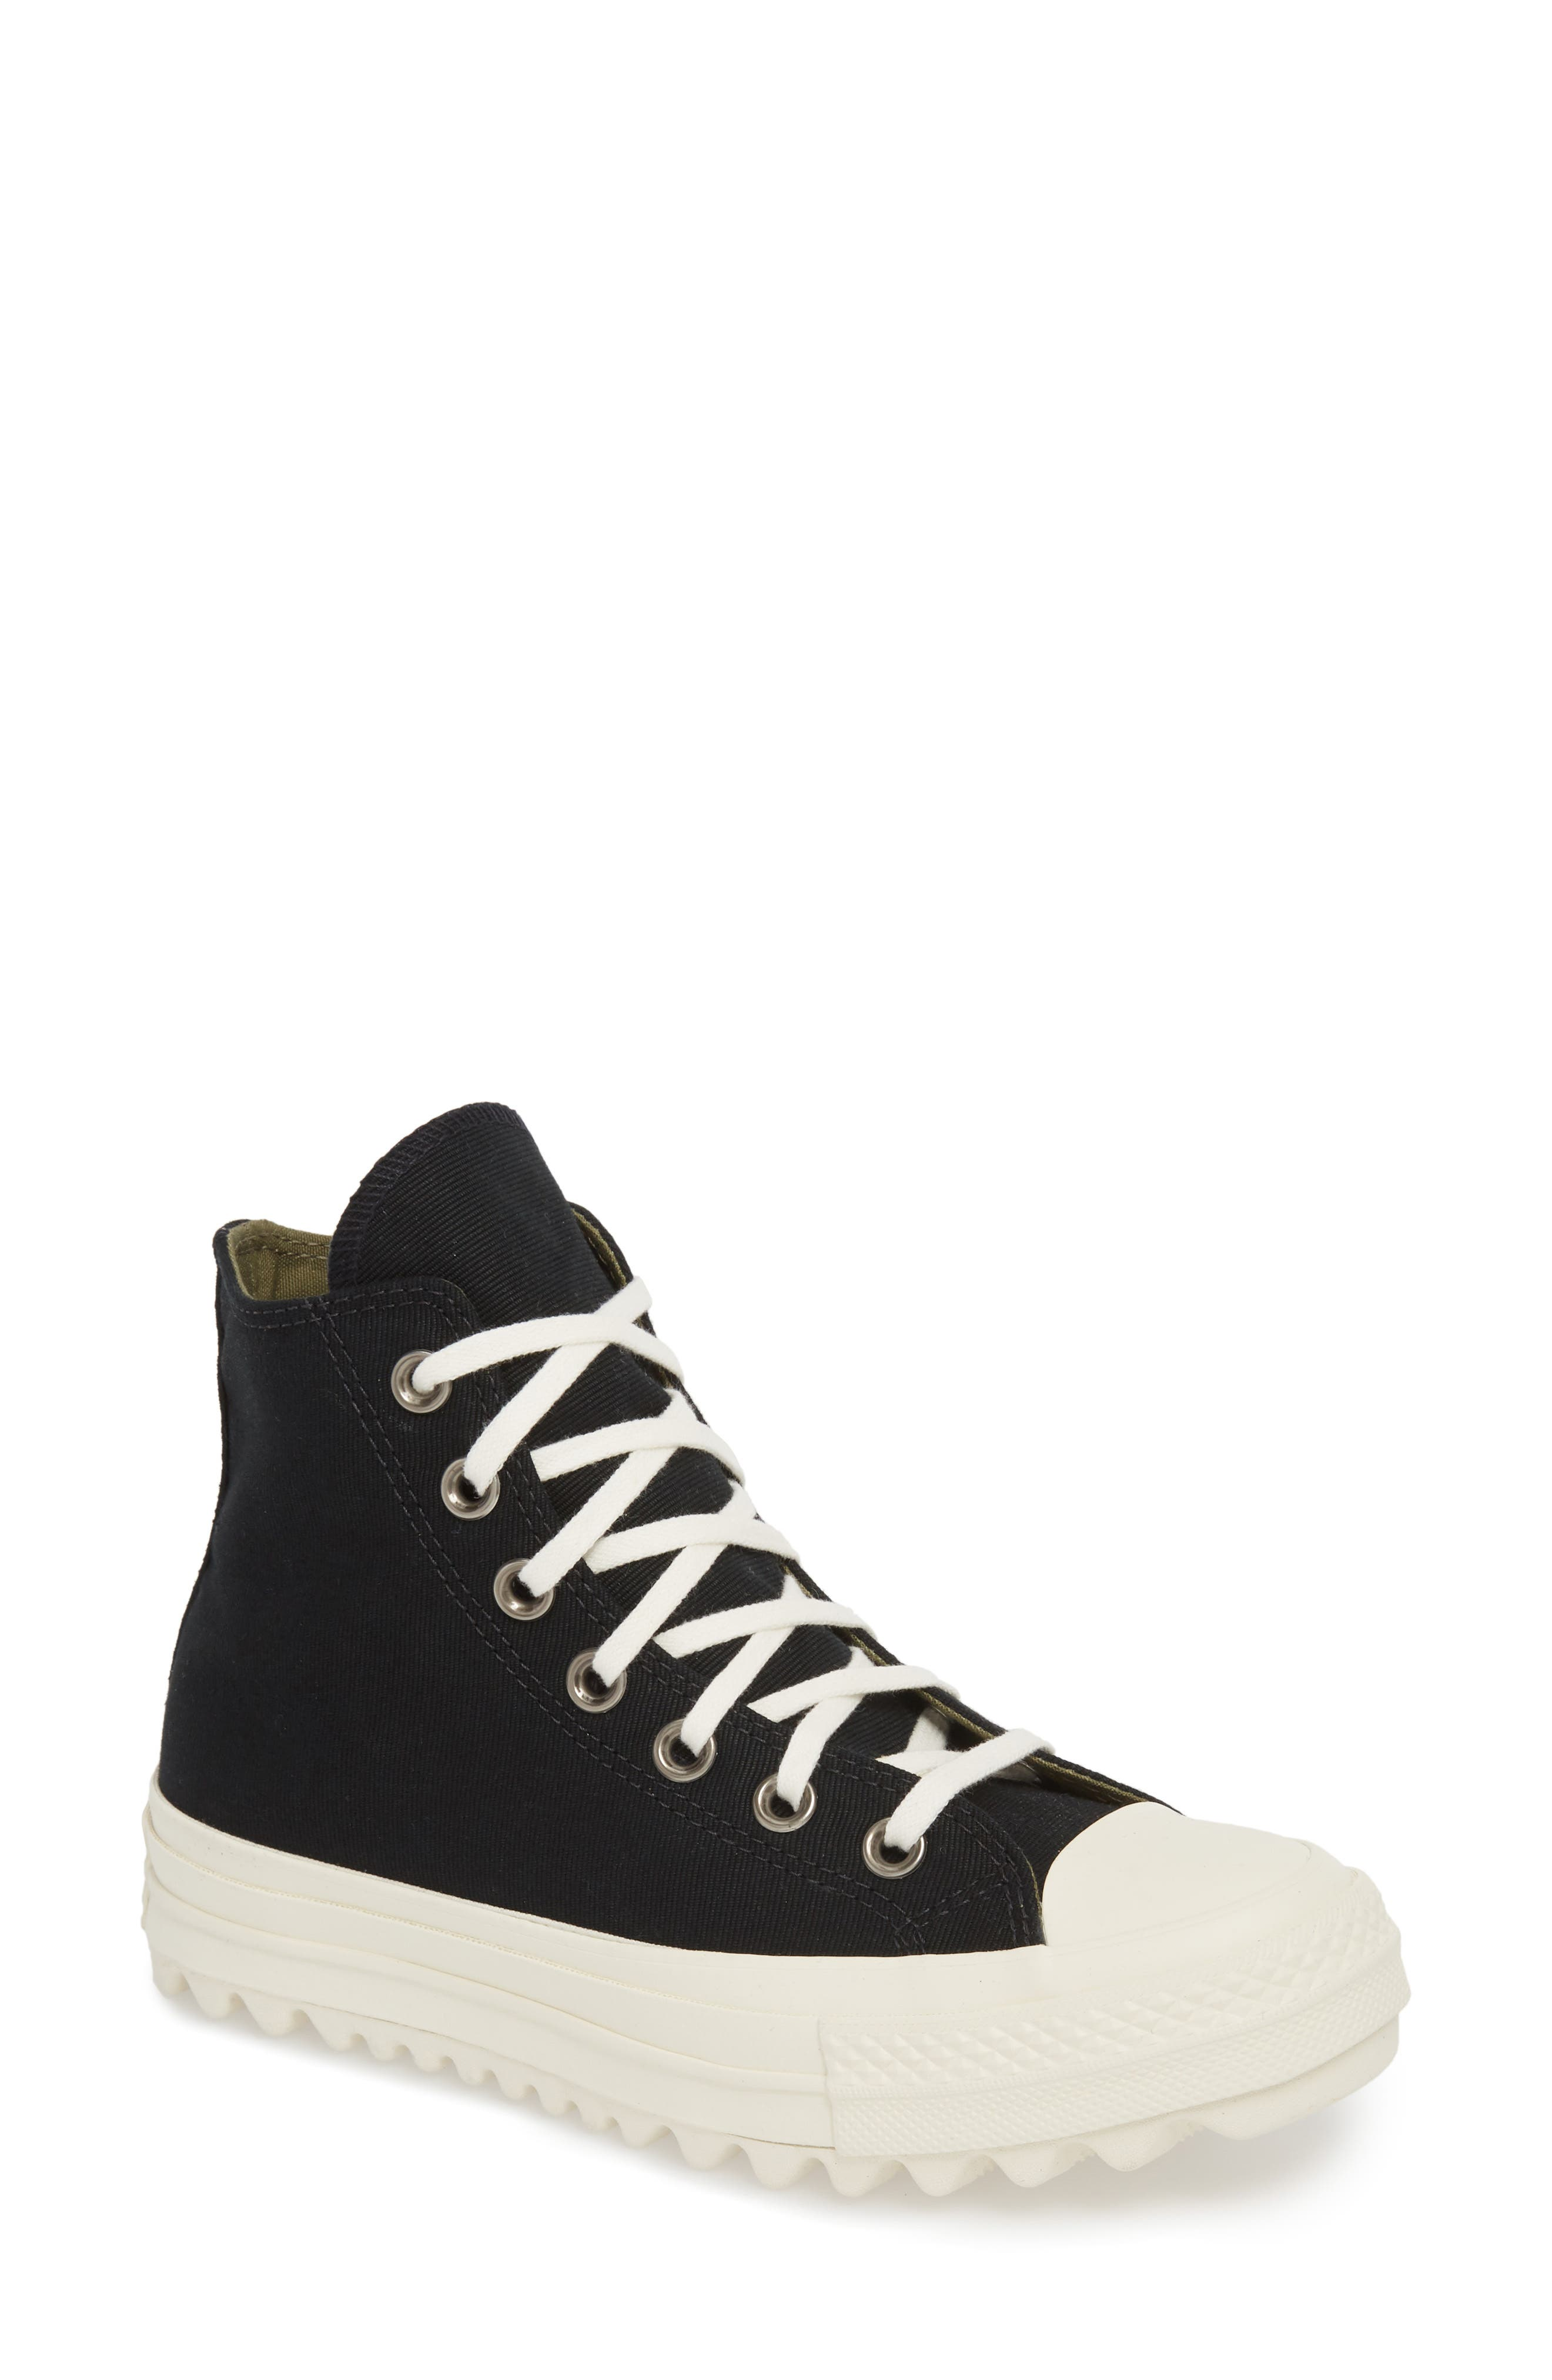 Chuck Taylor<sup>®</sup> All Star<sup>®</sup> Ripple High Top Sneaker,                             Main thumbnail 1, color,                             001